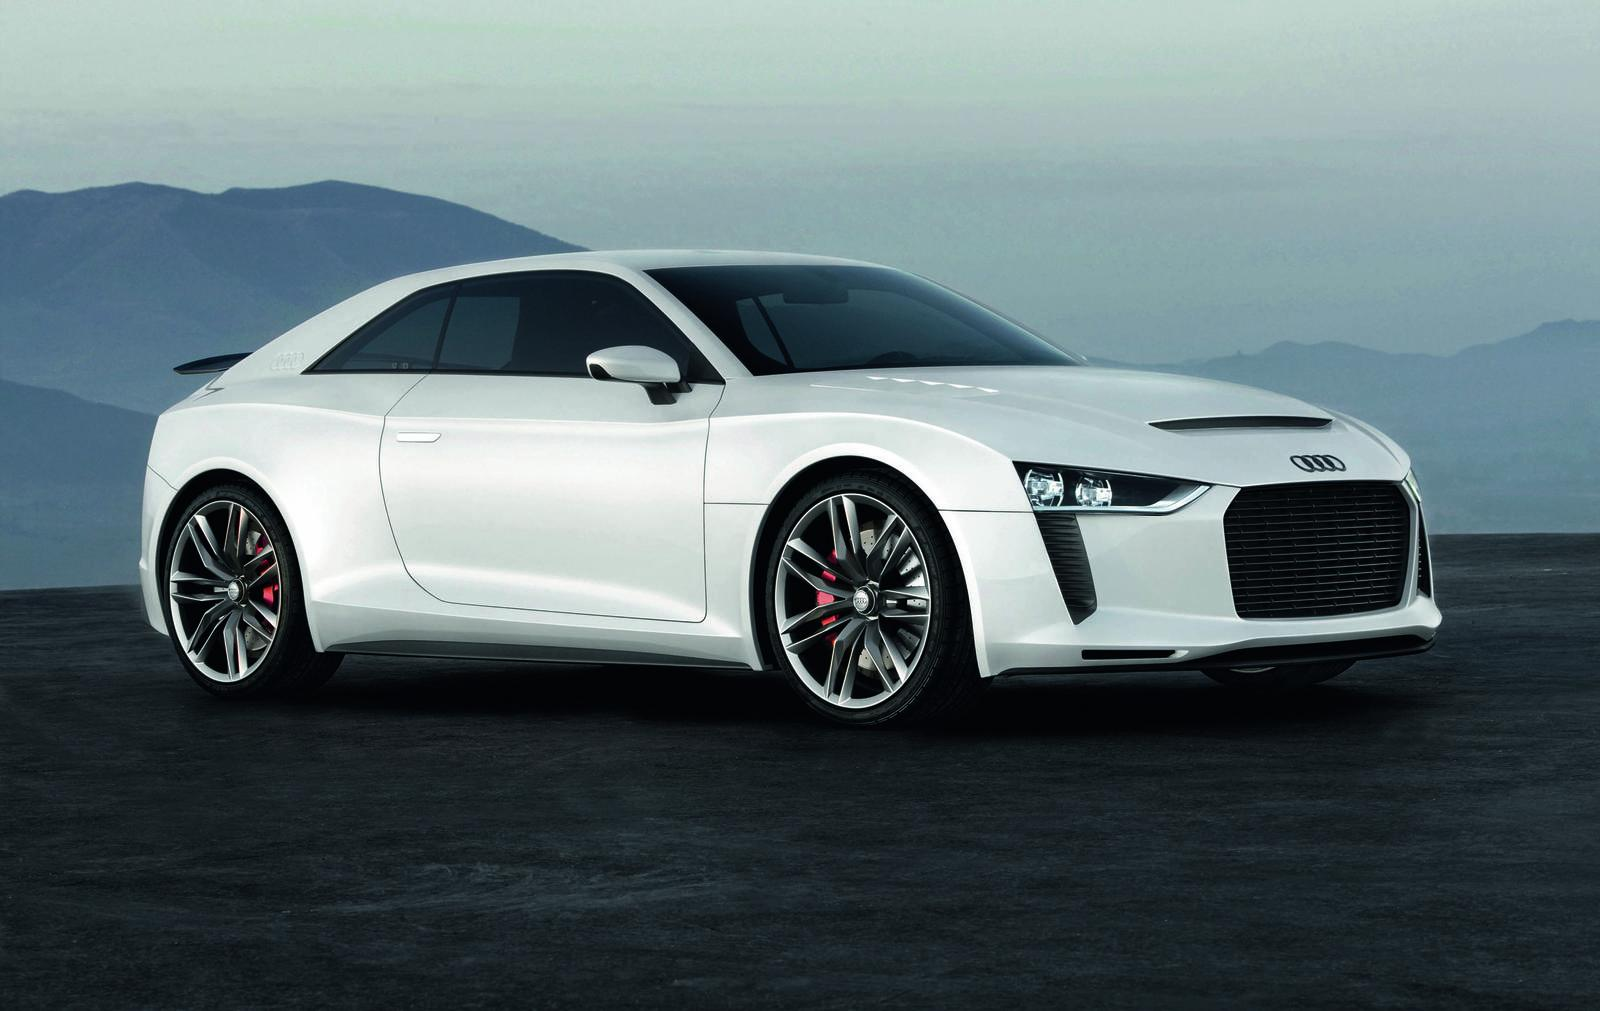 2015 Audi Quattro 2 Audi's plans for a successor to 2015 Quattro